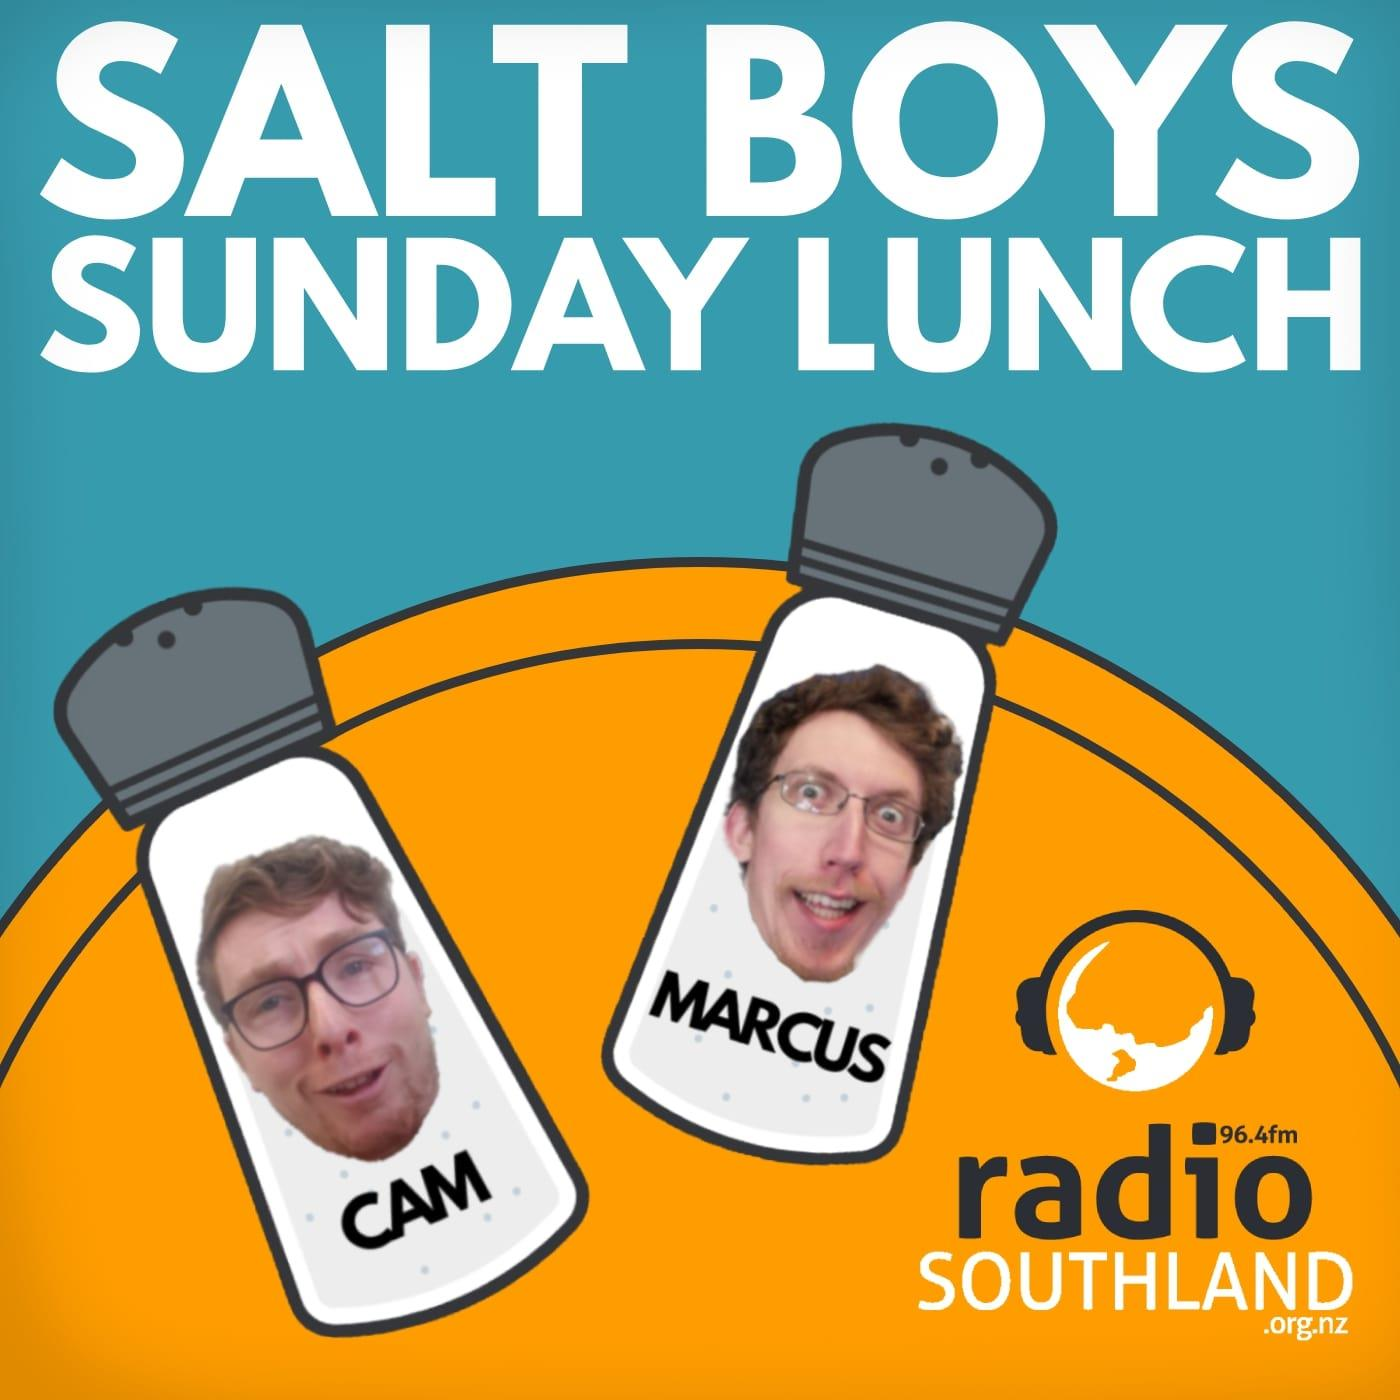 Salt Boys - Cam and Marcus